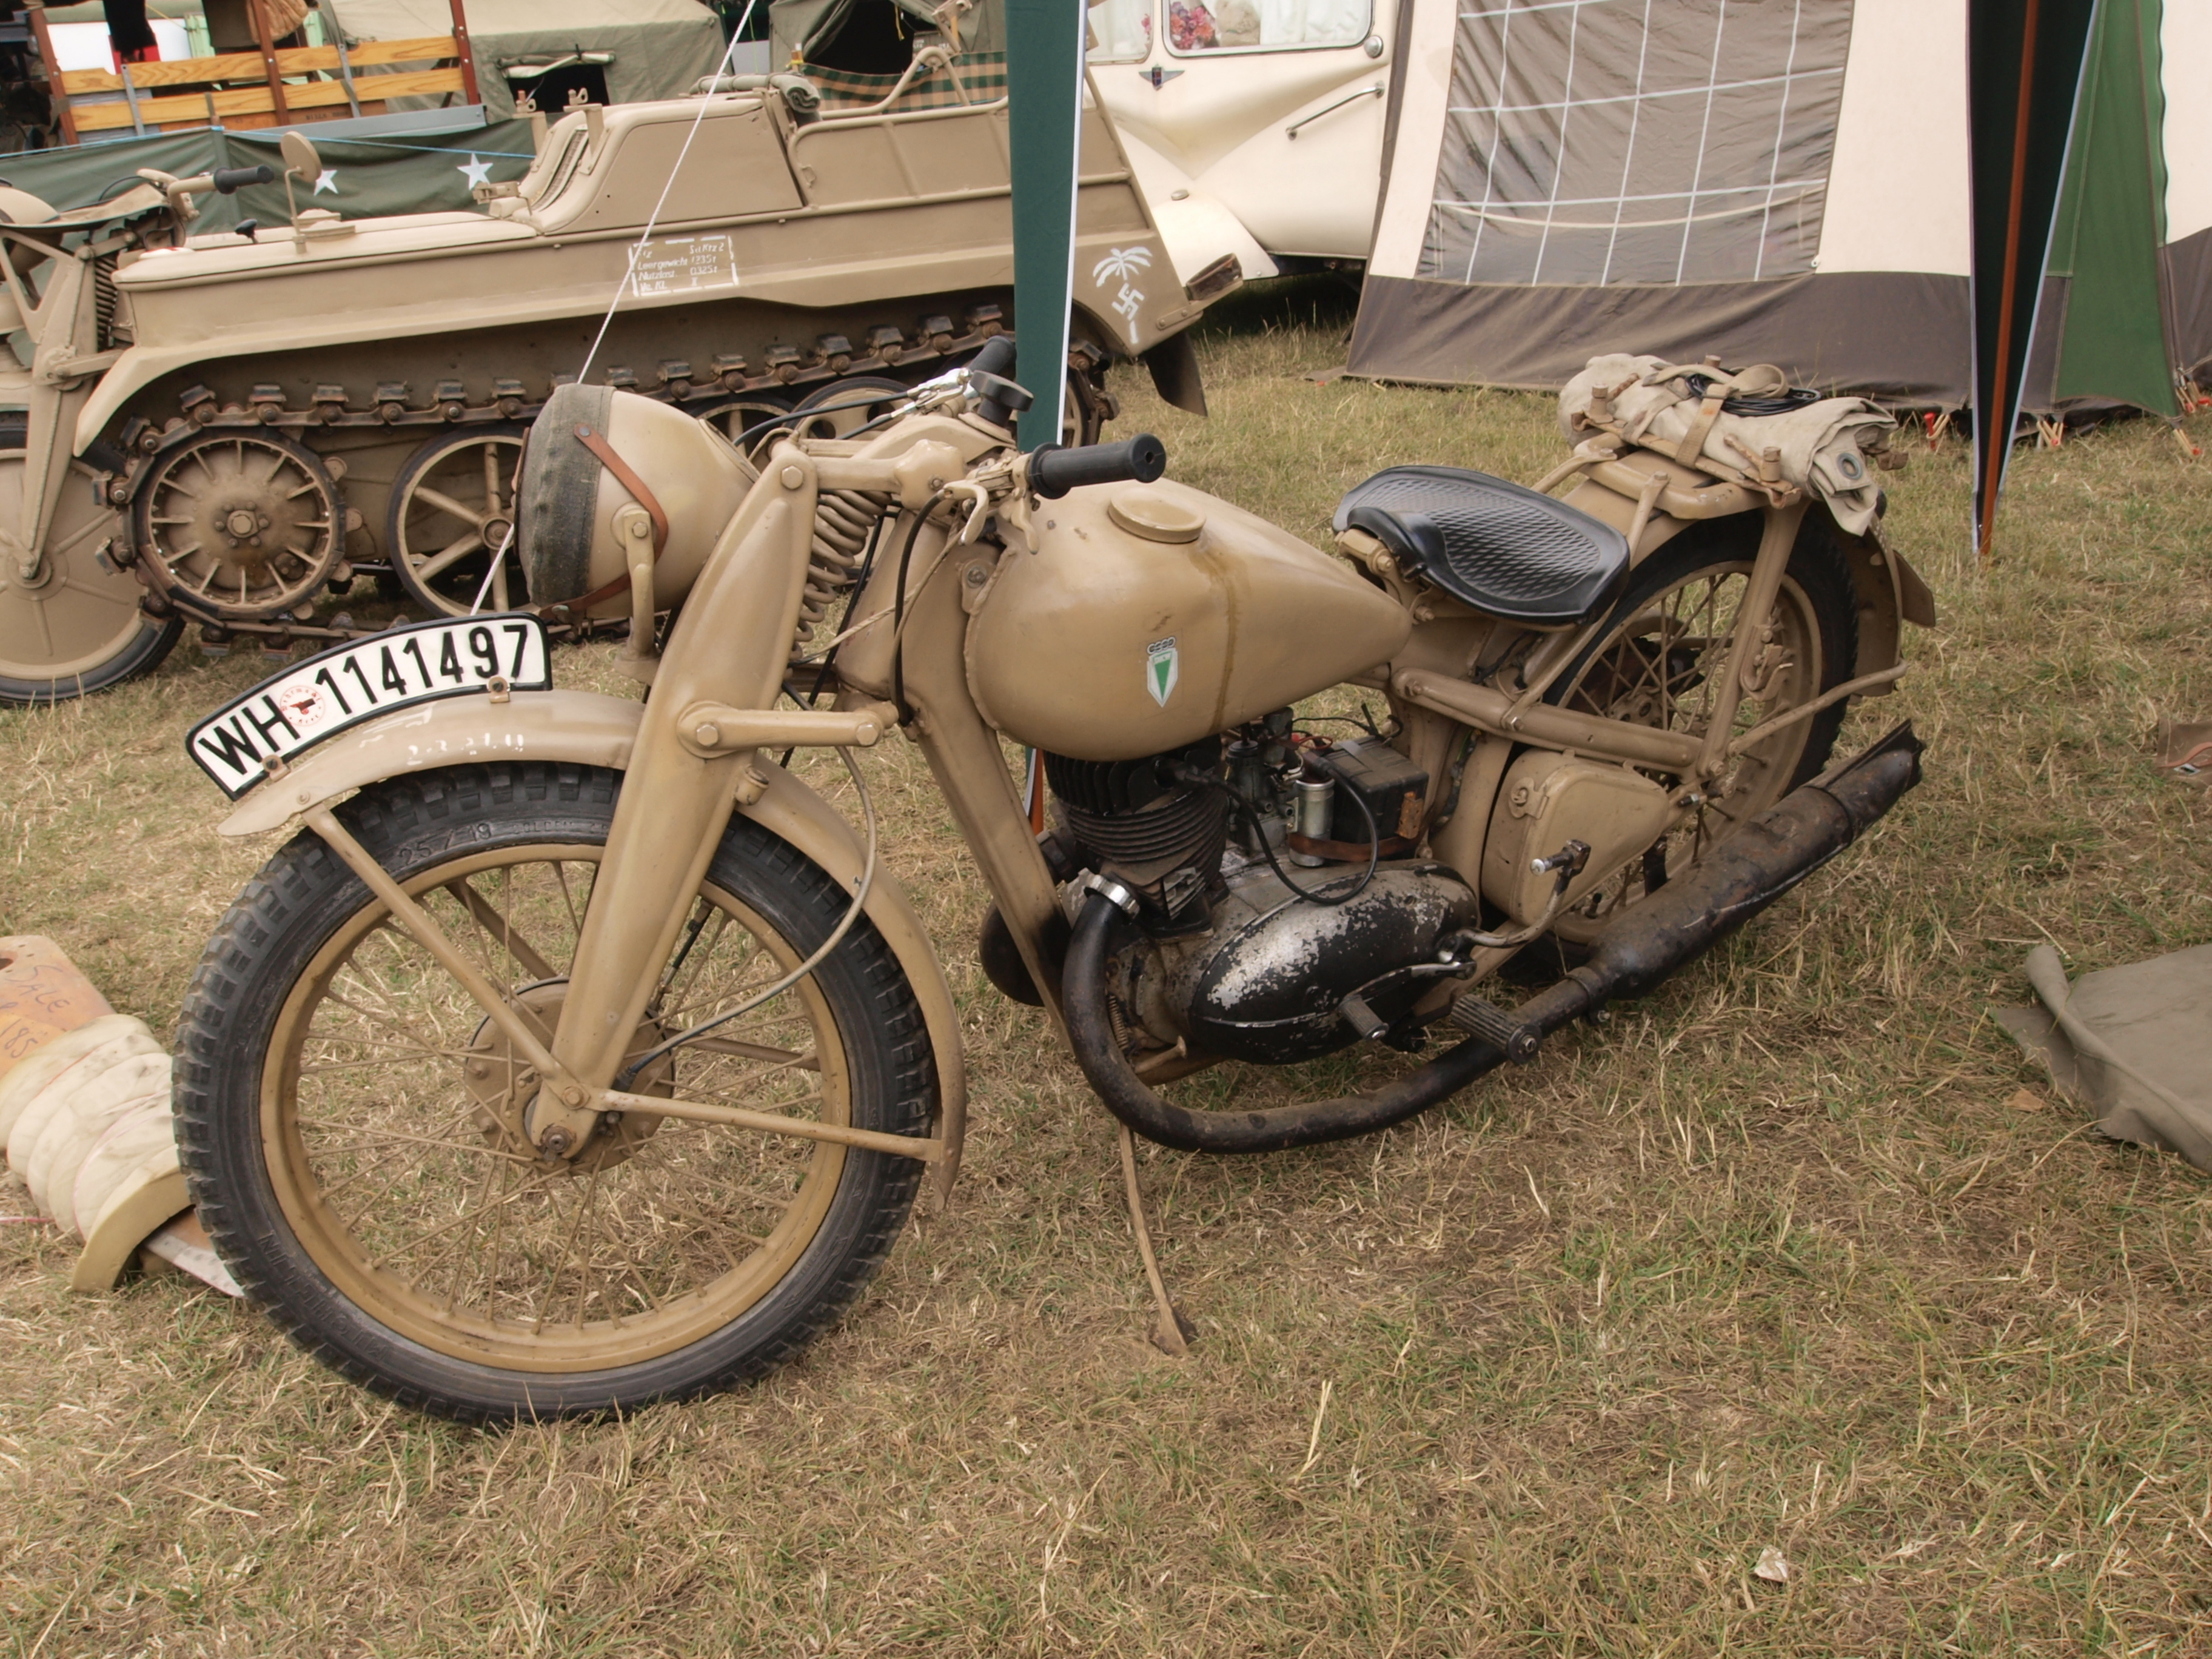 File:WW2 DKW wehrmacht motorcycle, WH-1141497.JPG - Wikimedia Commons